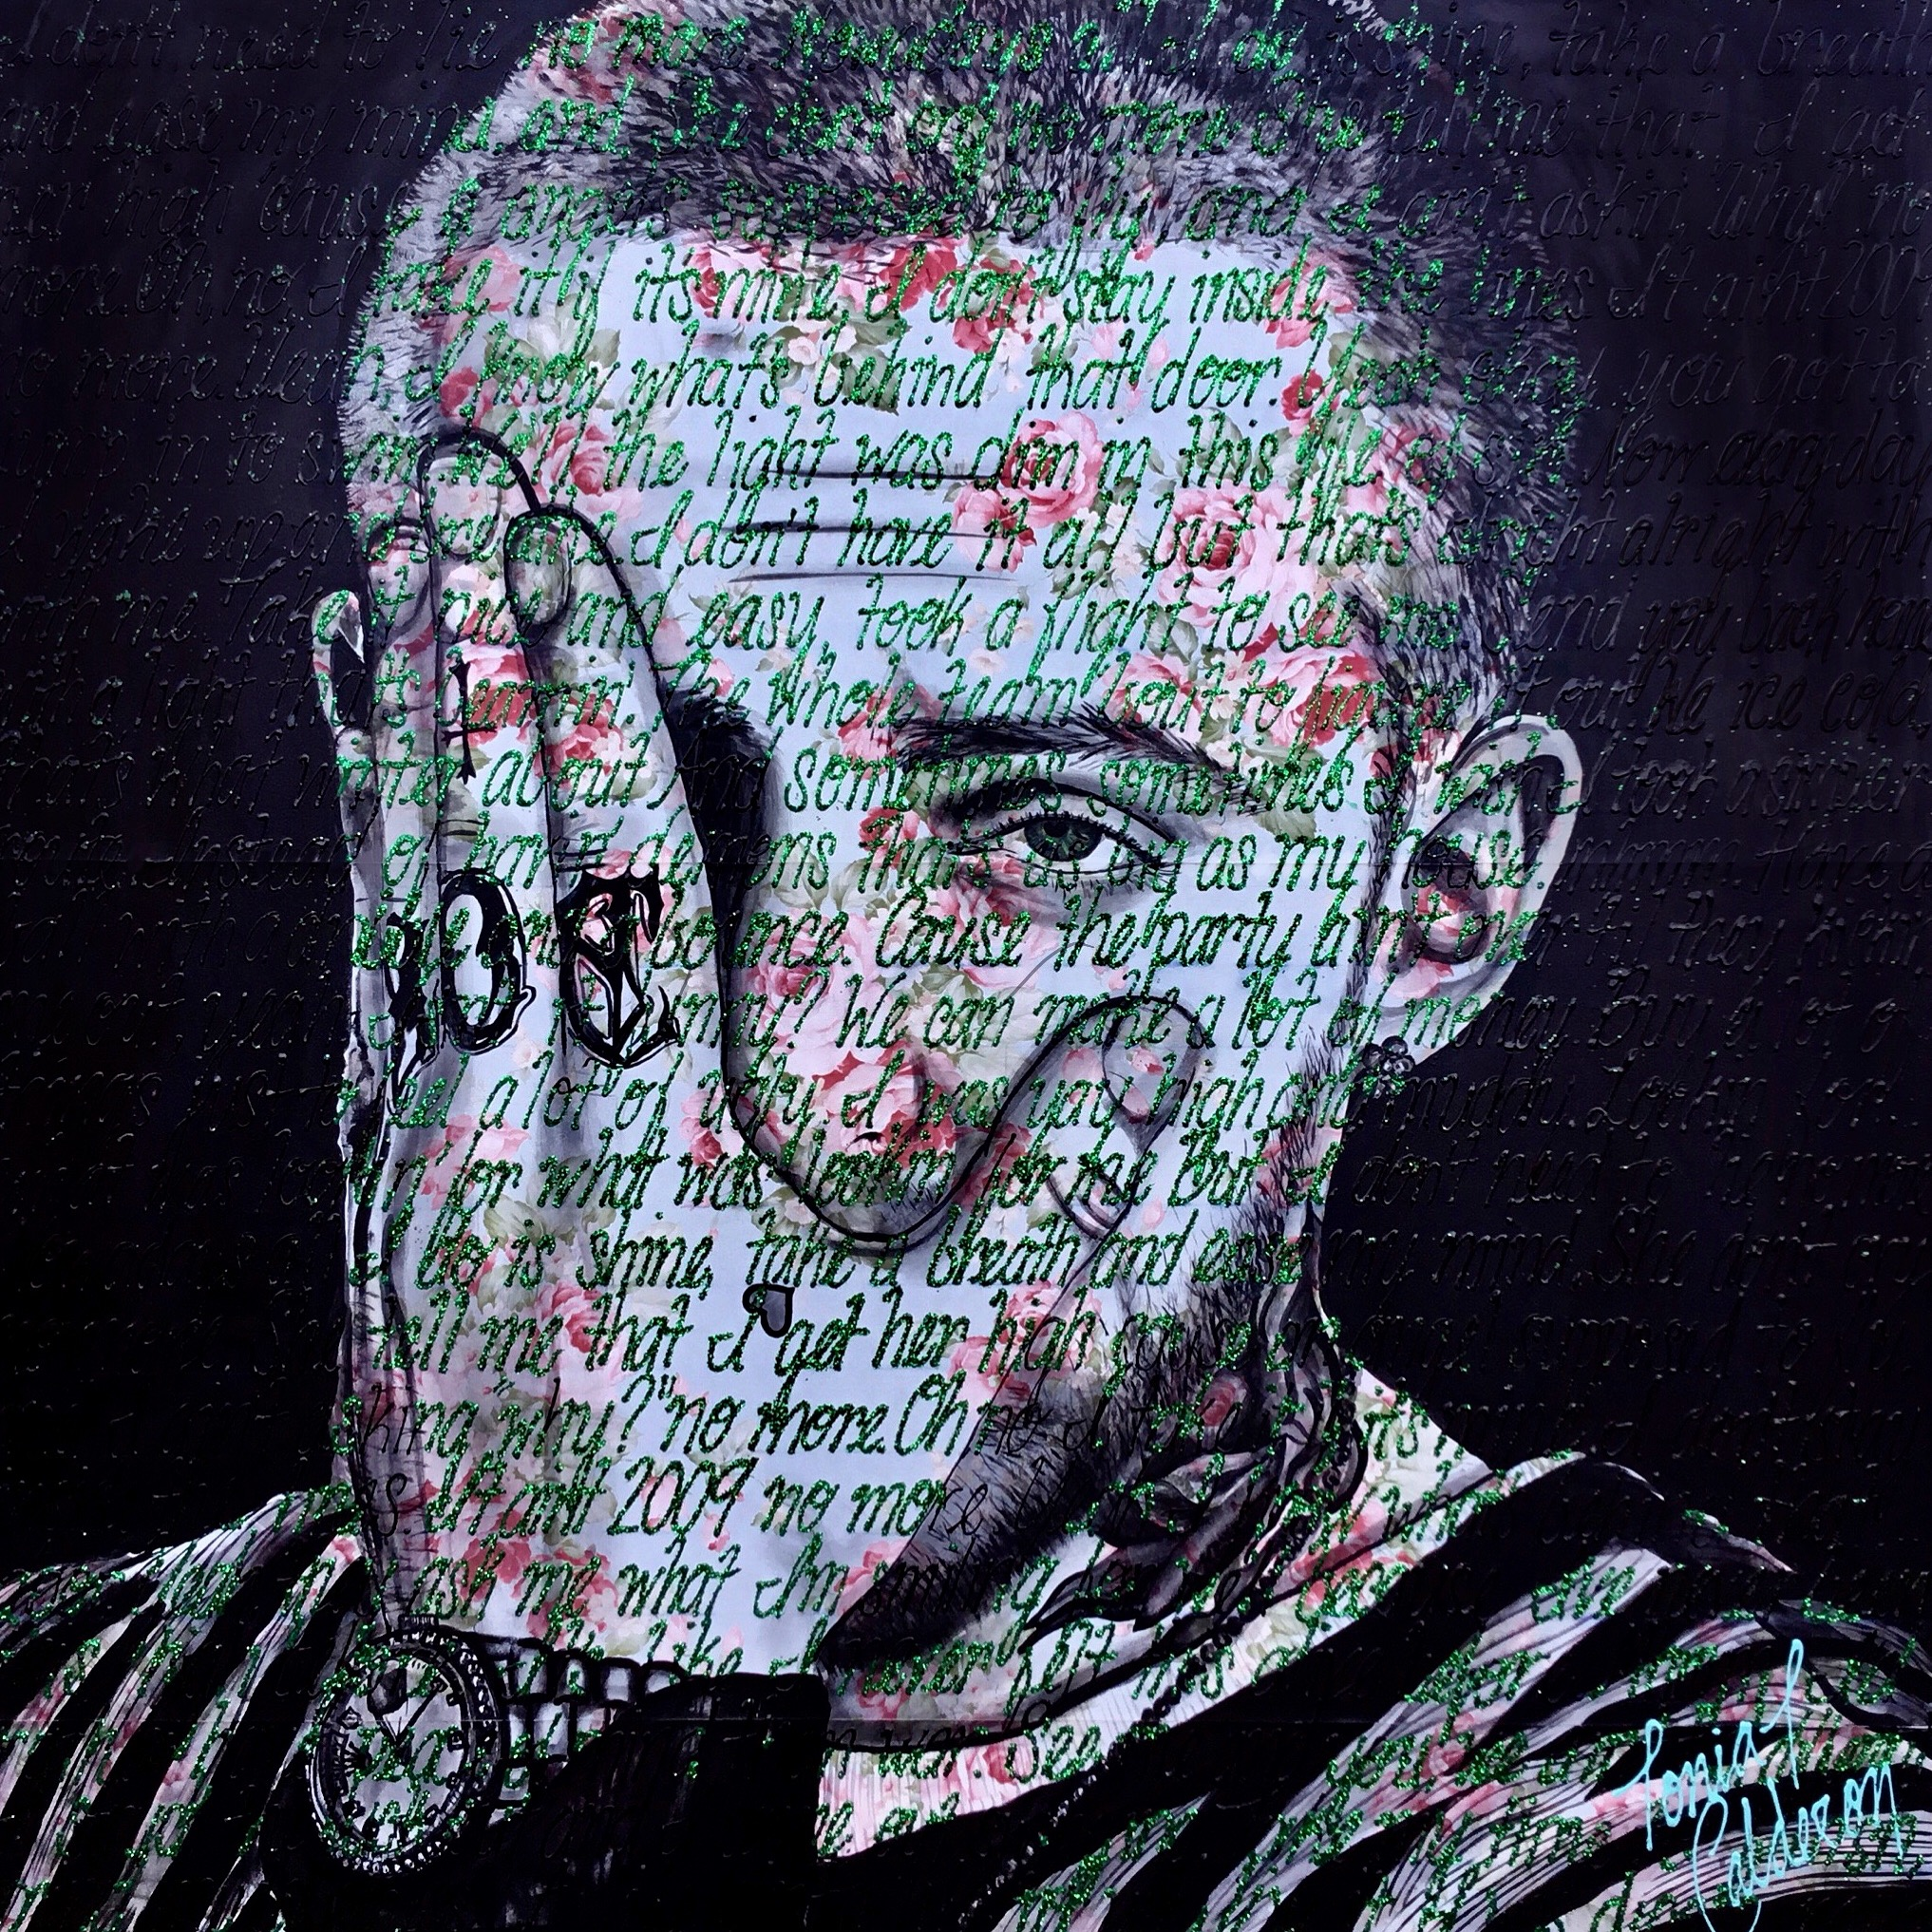 Mac Miller 48 by 48 painting